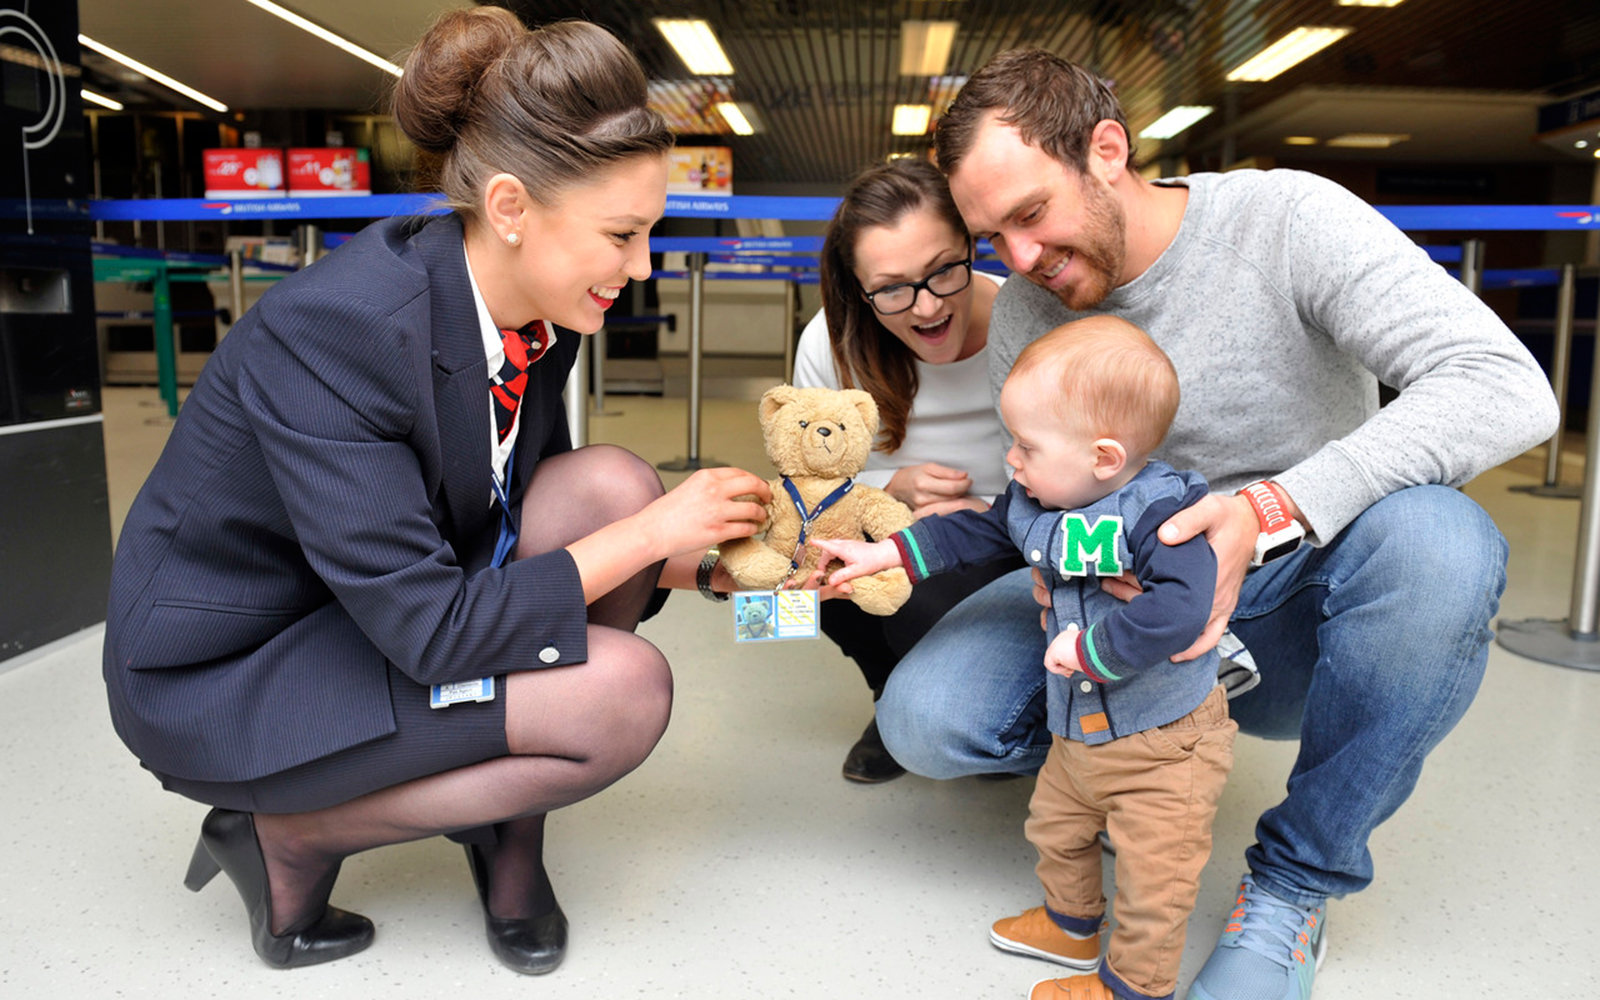 British Airways Teddy Bear name Pooh returned